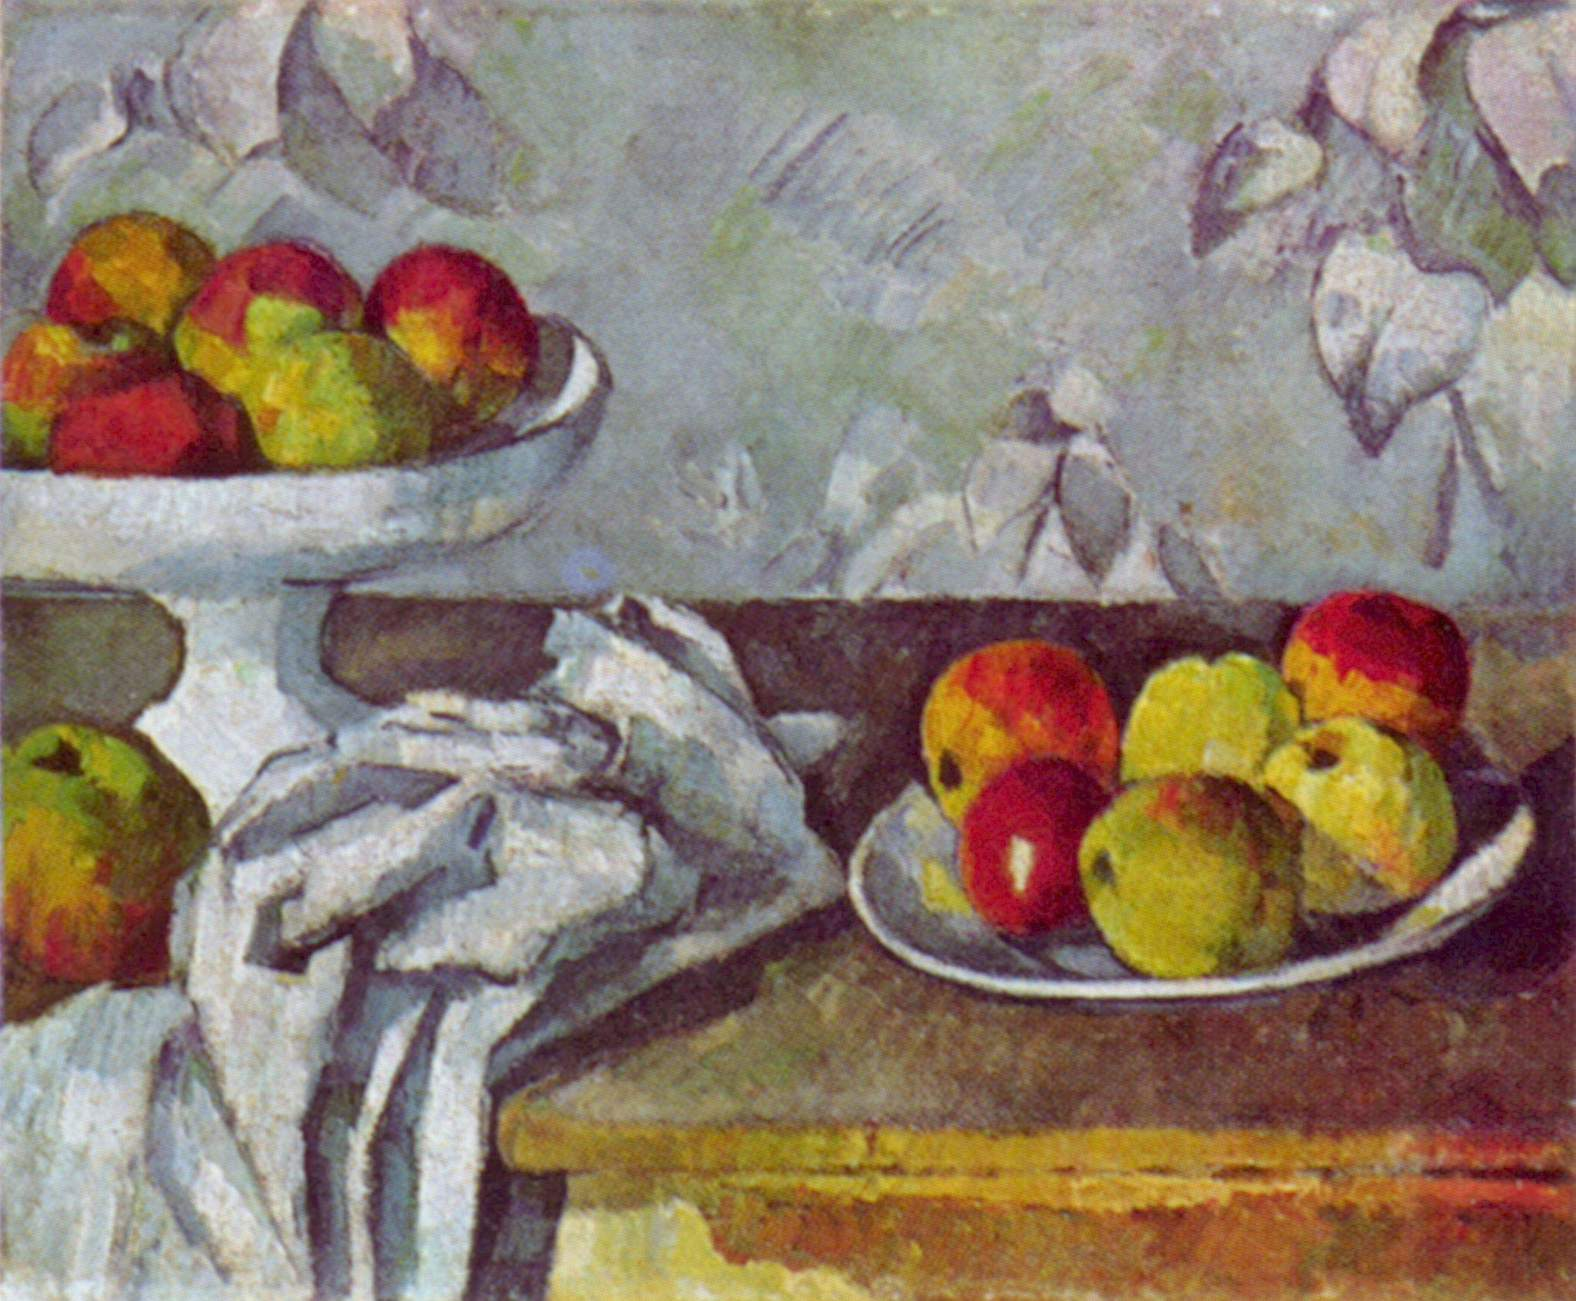 Still Life With Apples And Fruit Bowl, Paul Cezanne, 1882